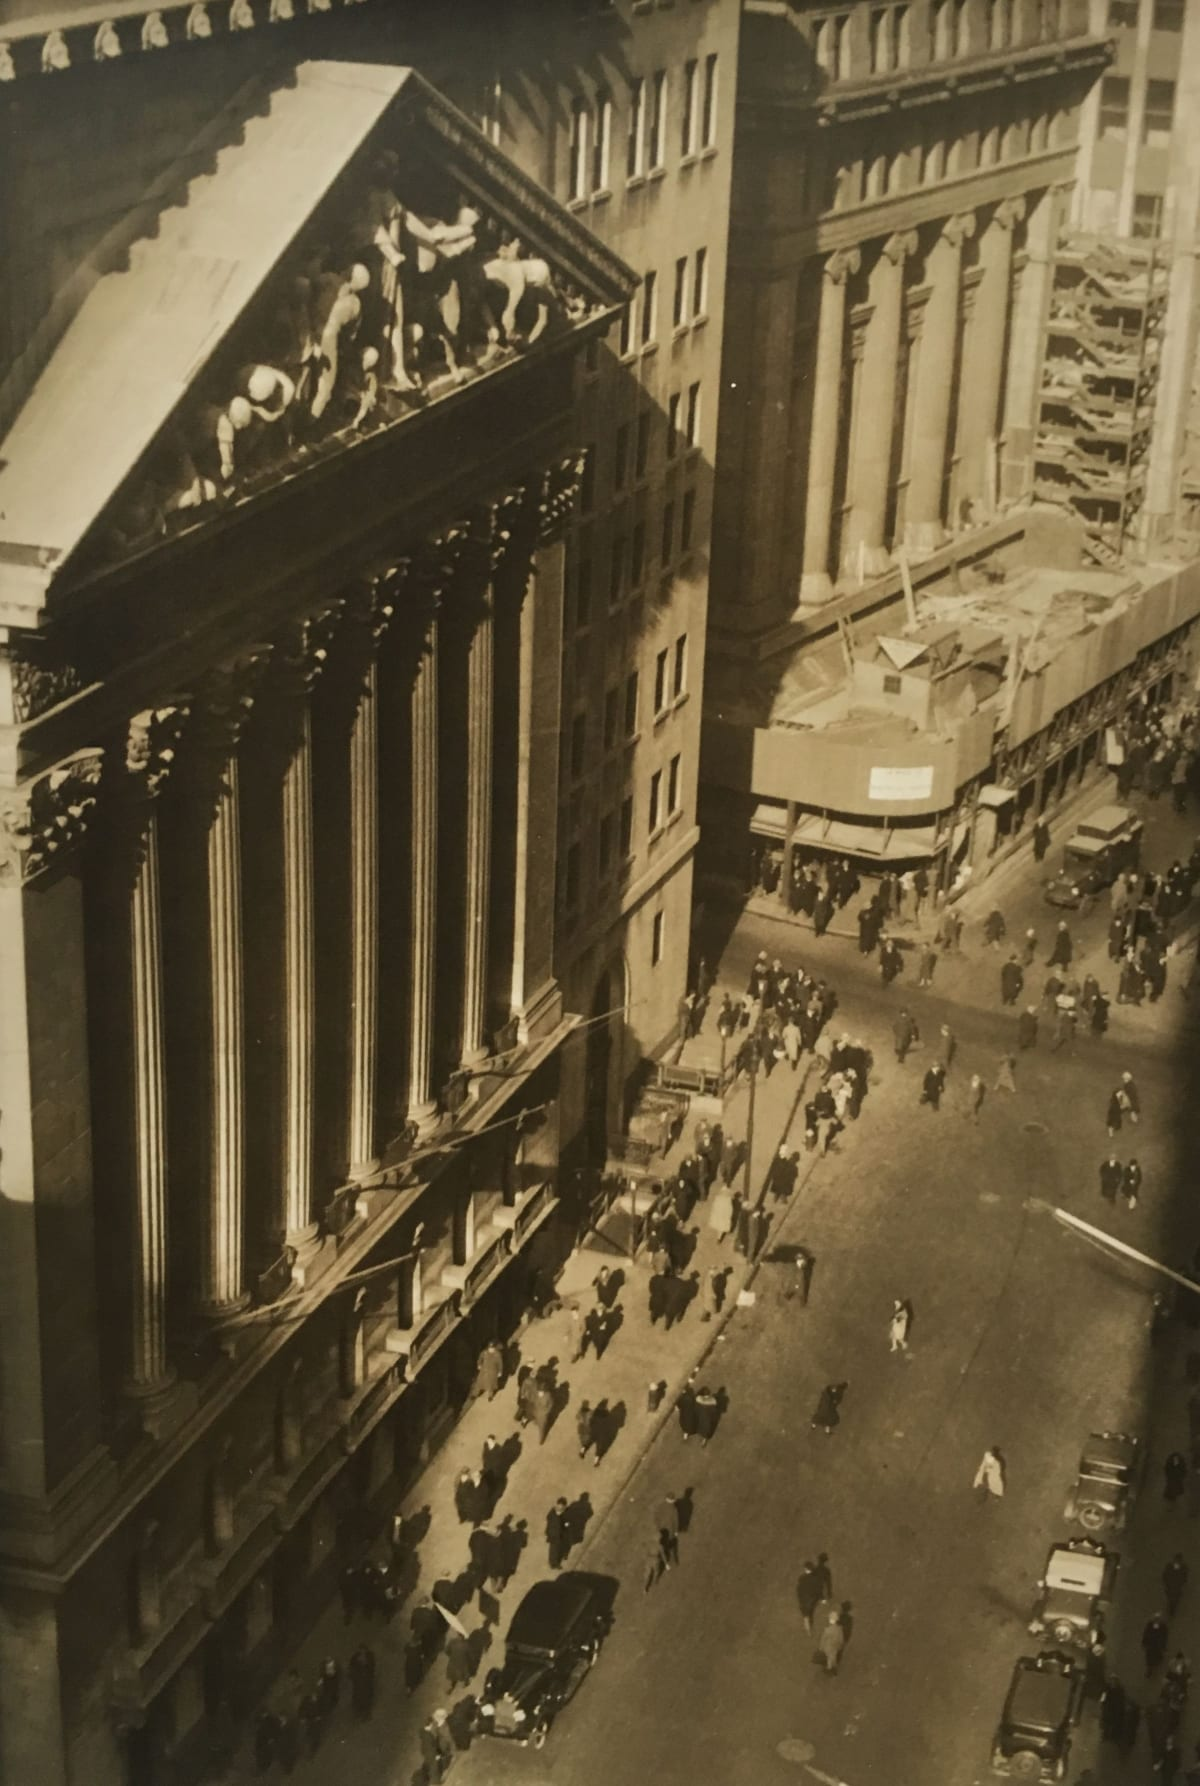 Fred Zinnemann Aerial View of City Street, New York, c. 1932 Vintage gelatin silver print 9 5/16 x 6 3/8 inches